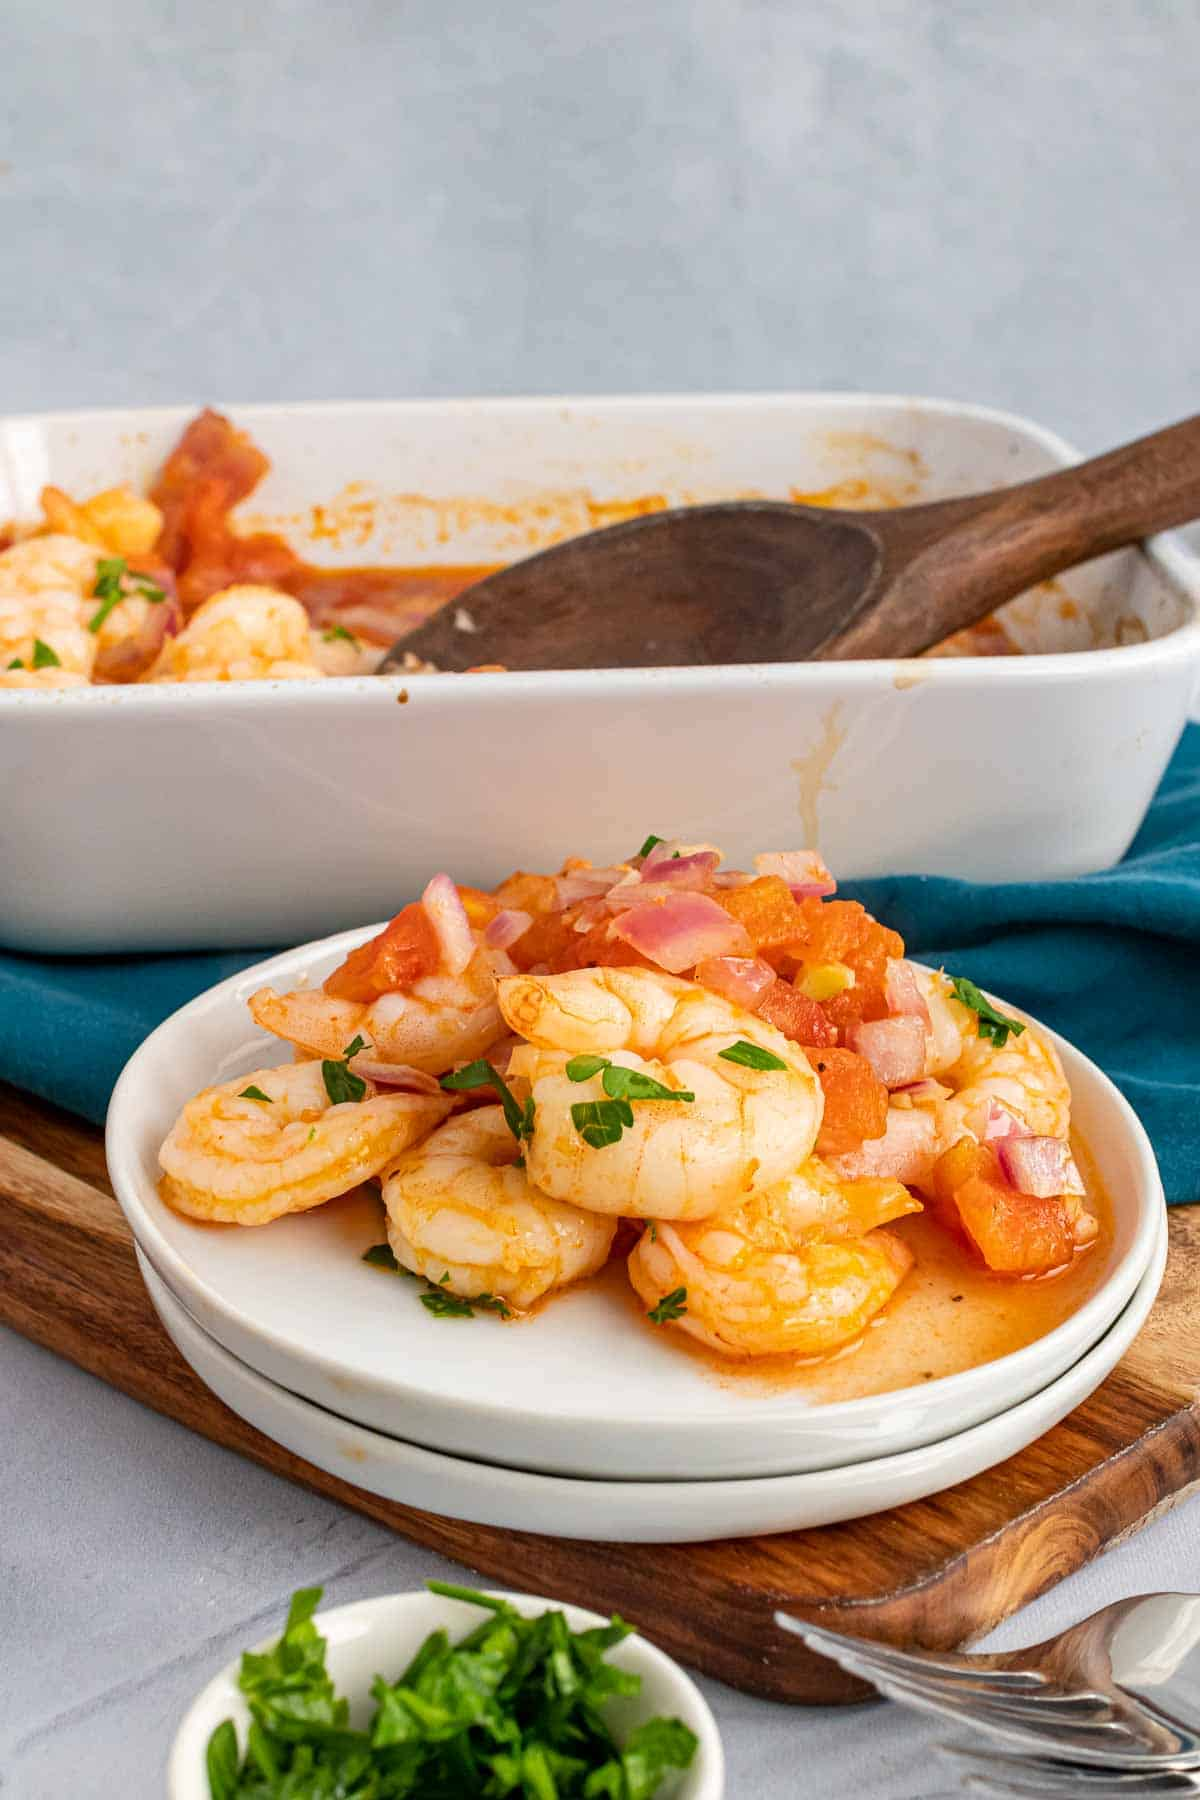 Plate of shrimp in front of the baking dish